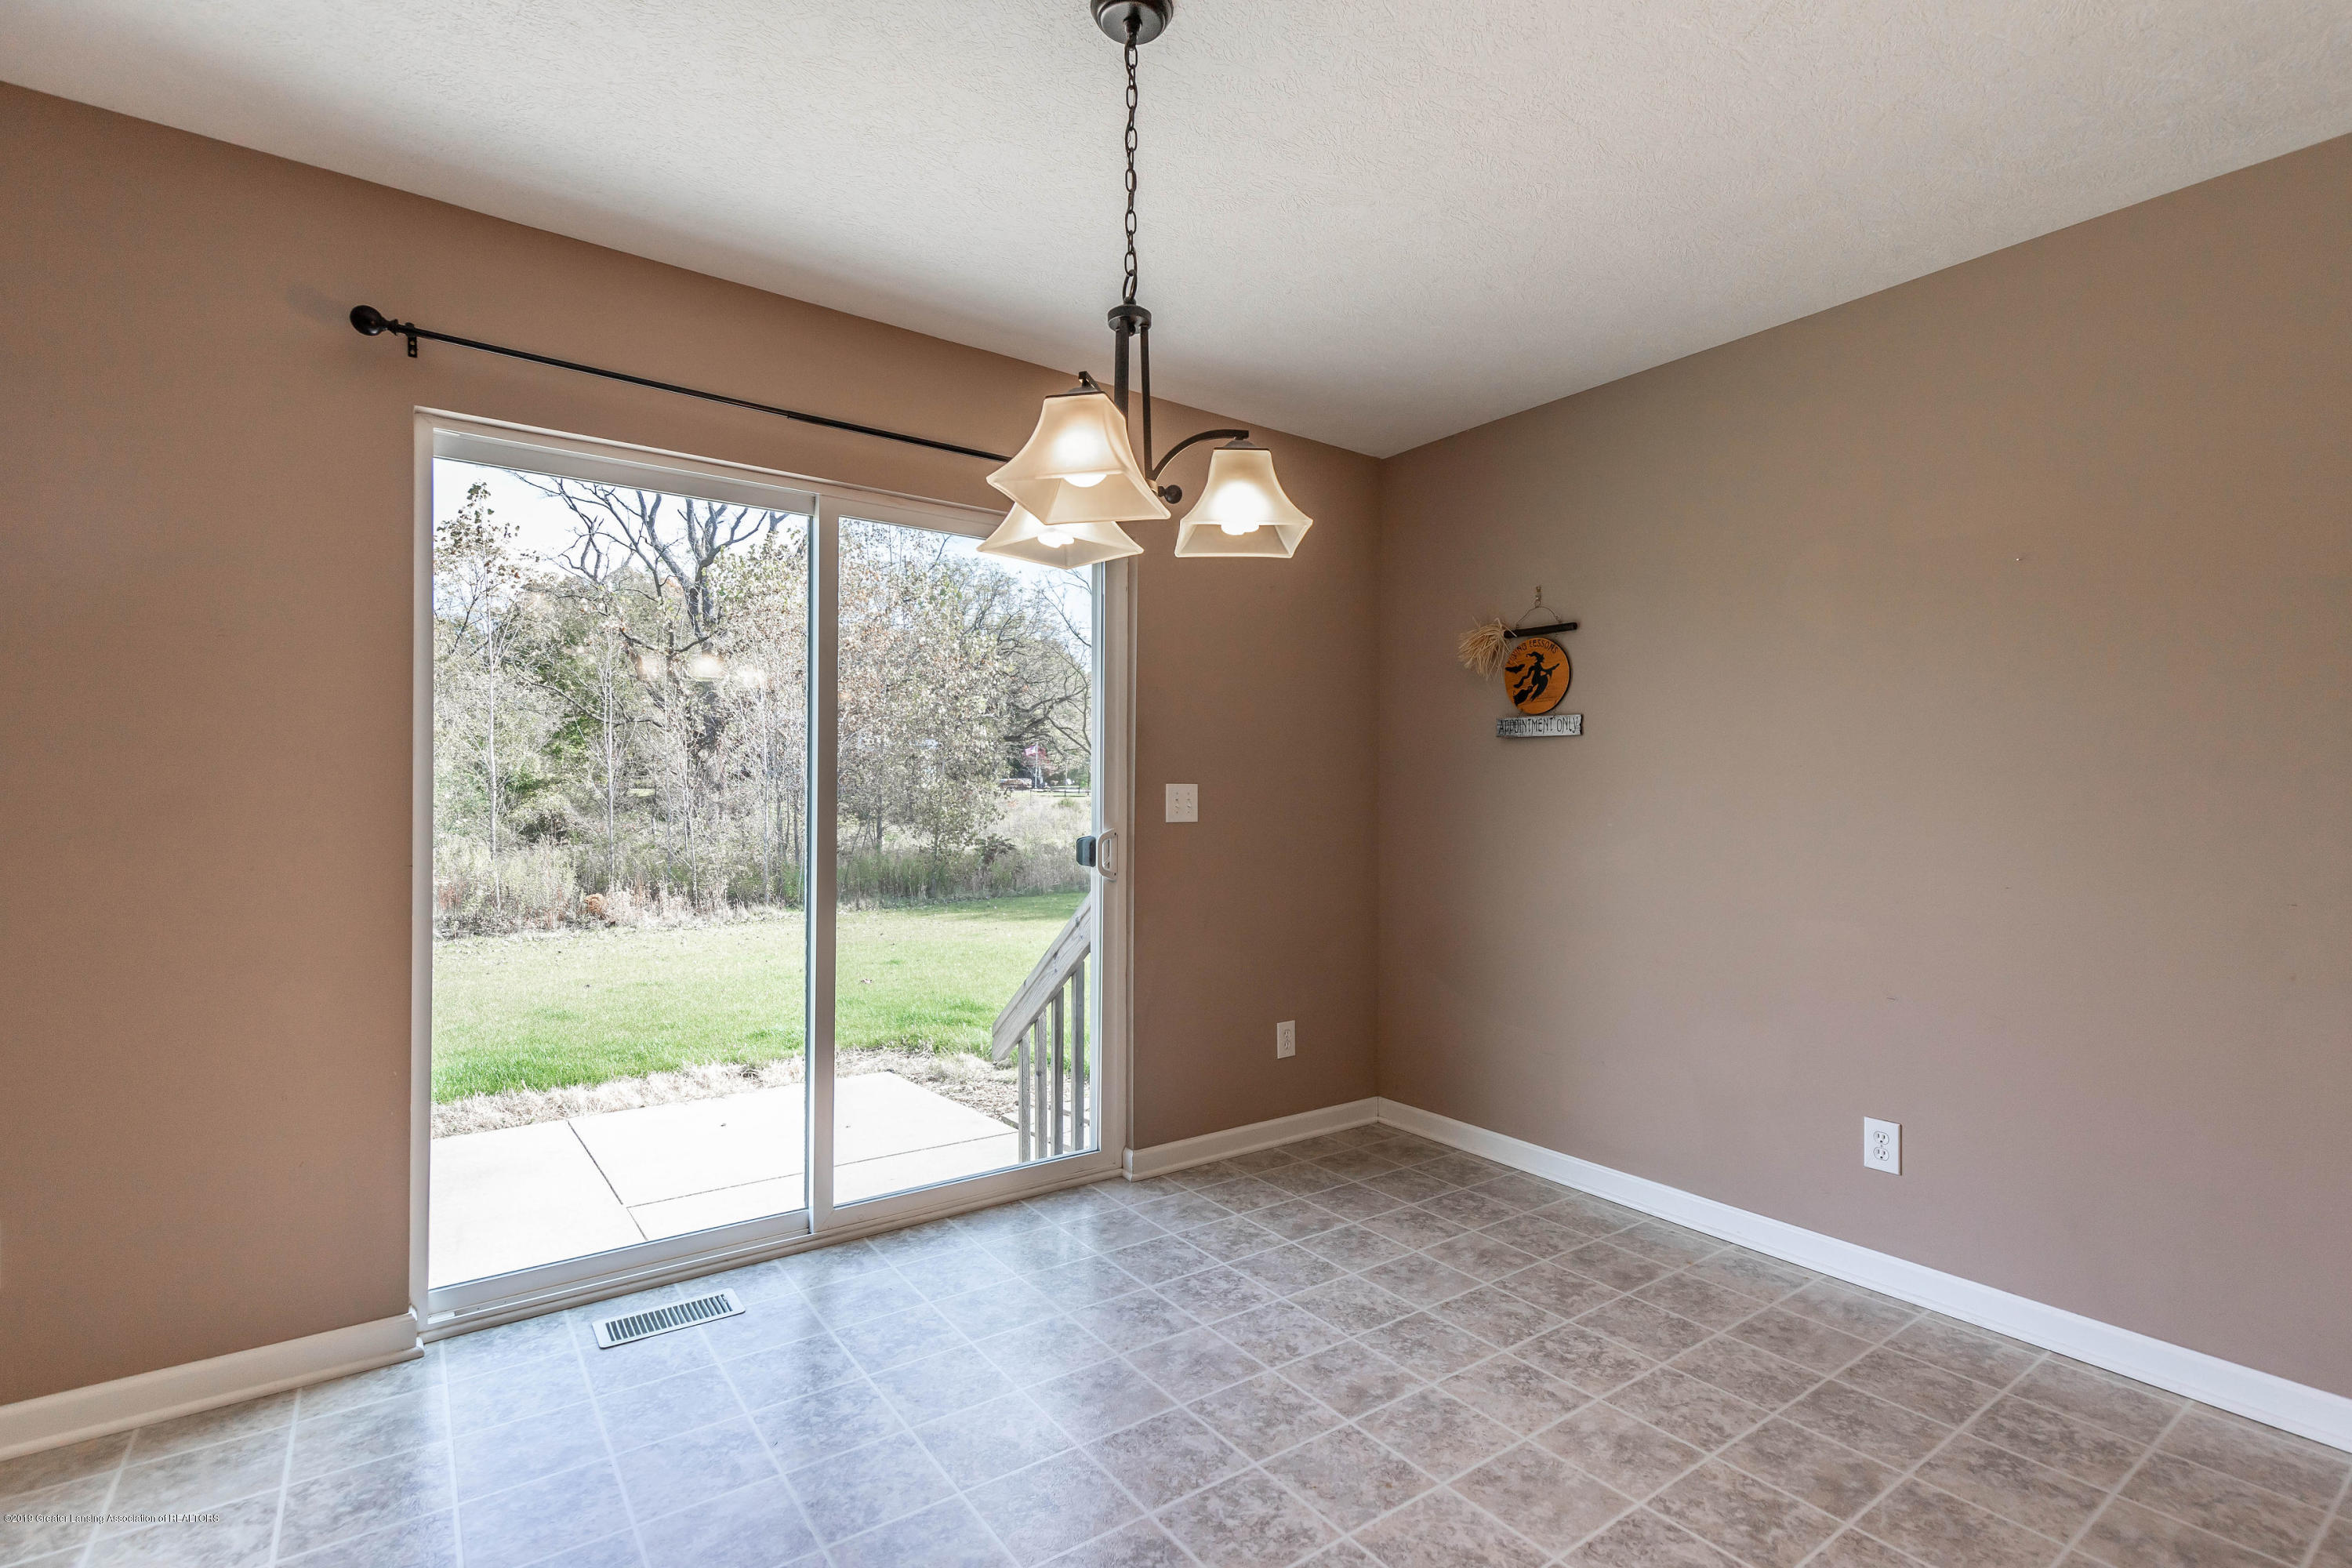 15125 Loxley Ln - loxleykit4(1of1) - 11